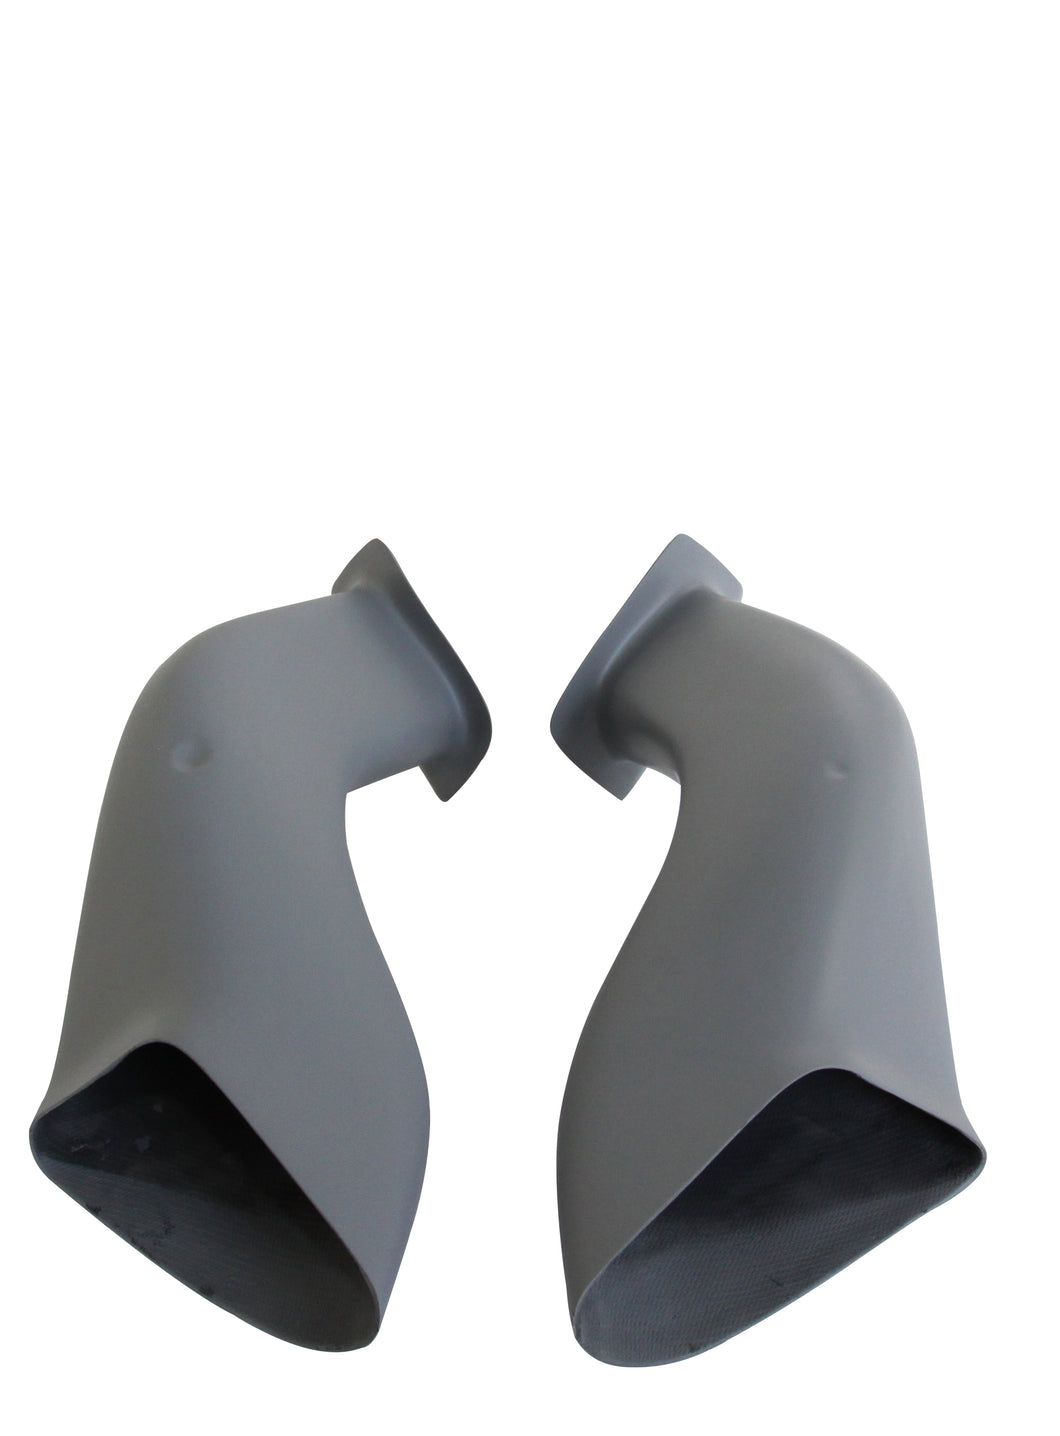 HAYABUSA 99-07 DME Air Ducts